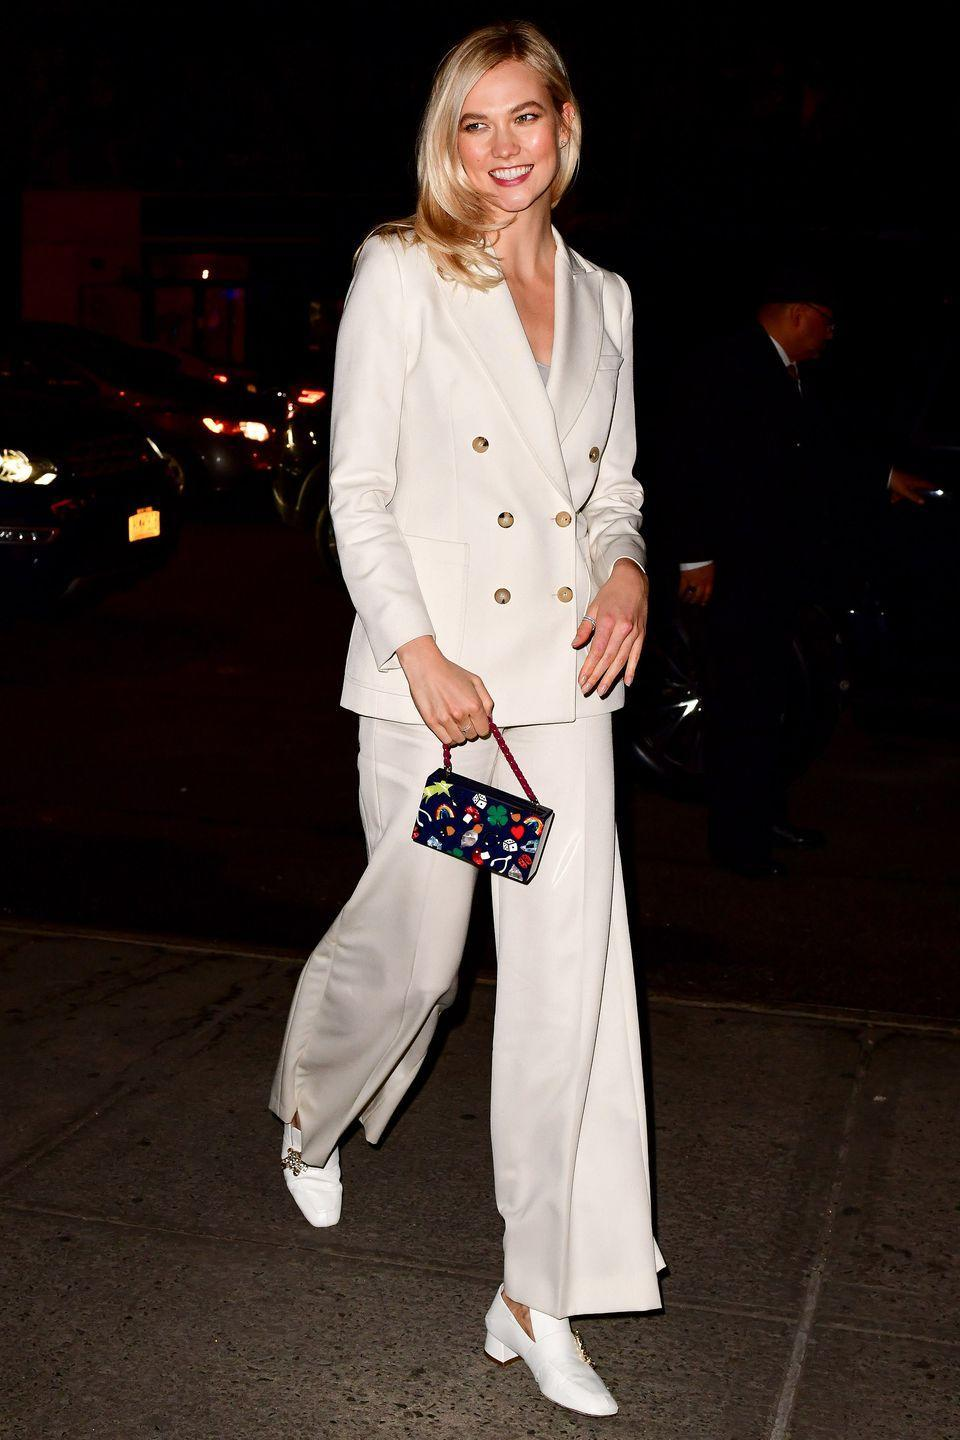 <p>Karlie Kloss might be headed out for the evening but this chic white trouser suit will work day to night. The fit is loose so you won't get too warm, but you're still covered up (because it's not quite beach weather yet).</p>